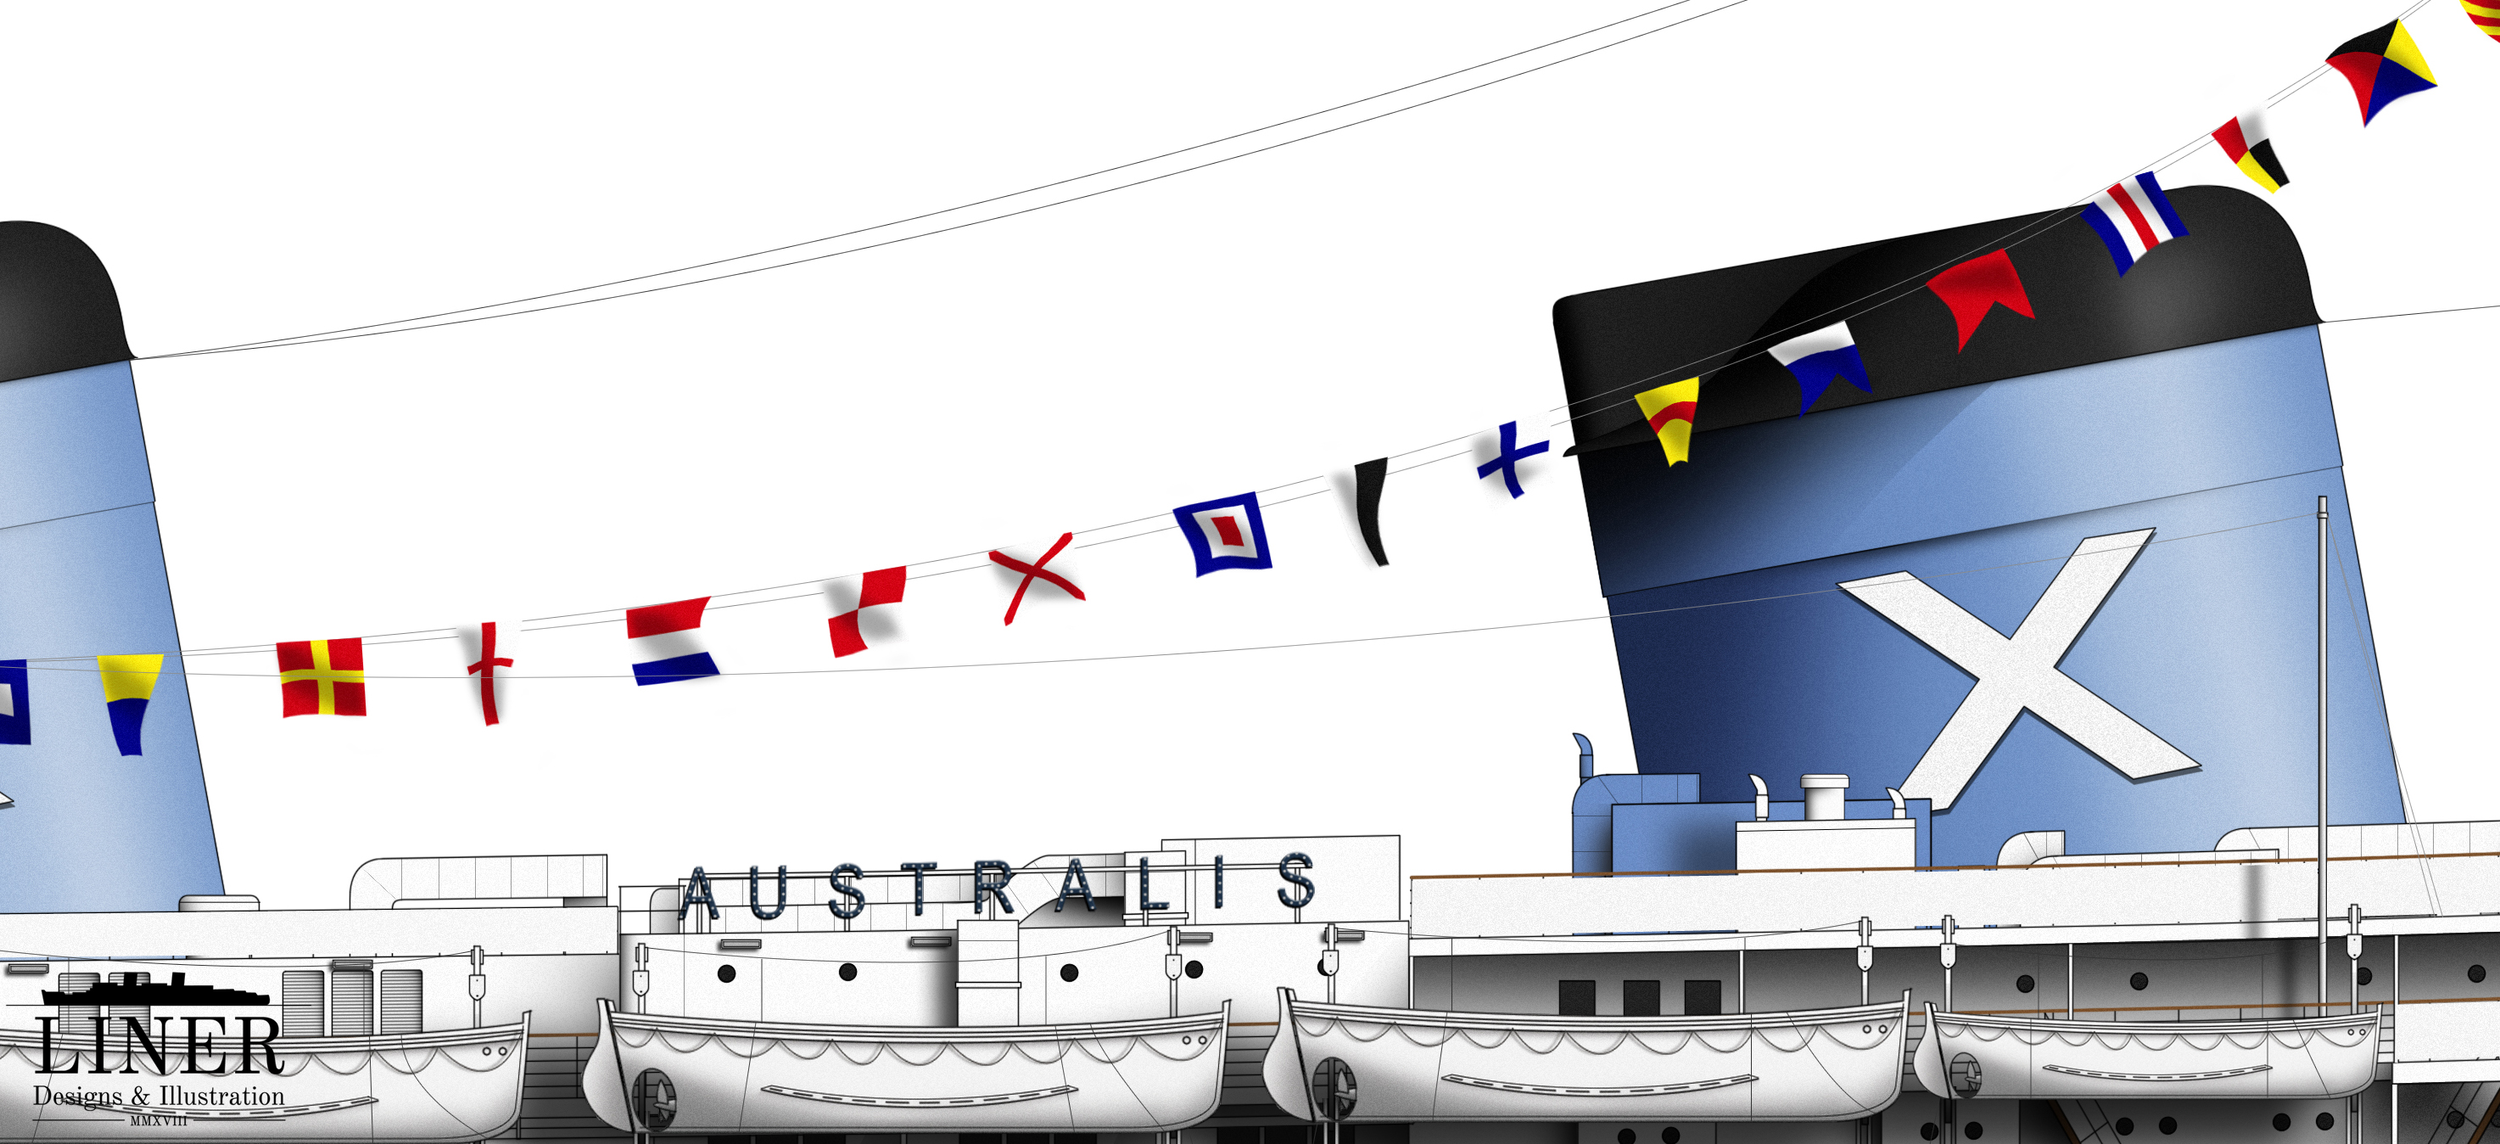 It was common practice, when arriving at a foreign destination, to fly decorative flags from the signal halyards stretching across the boat deck.